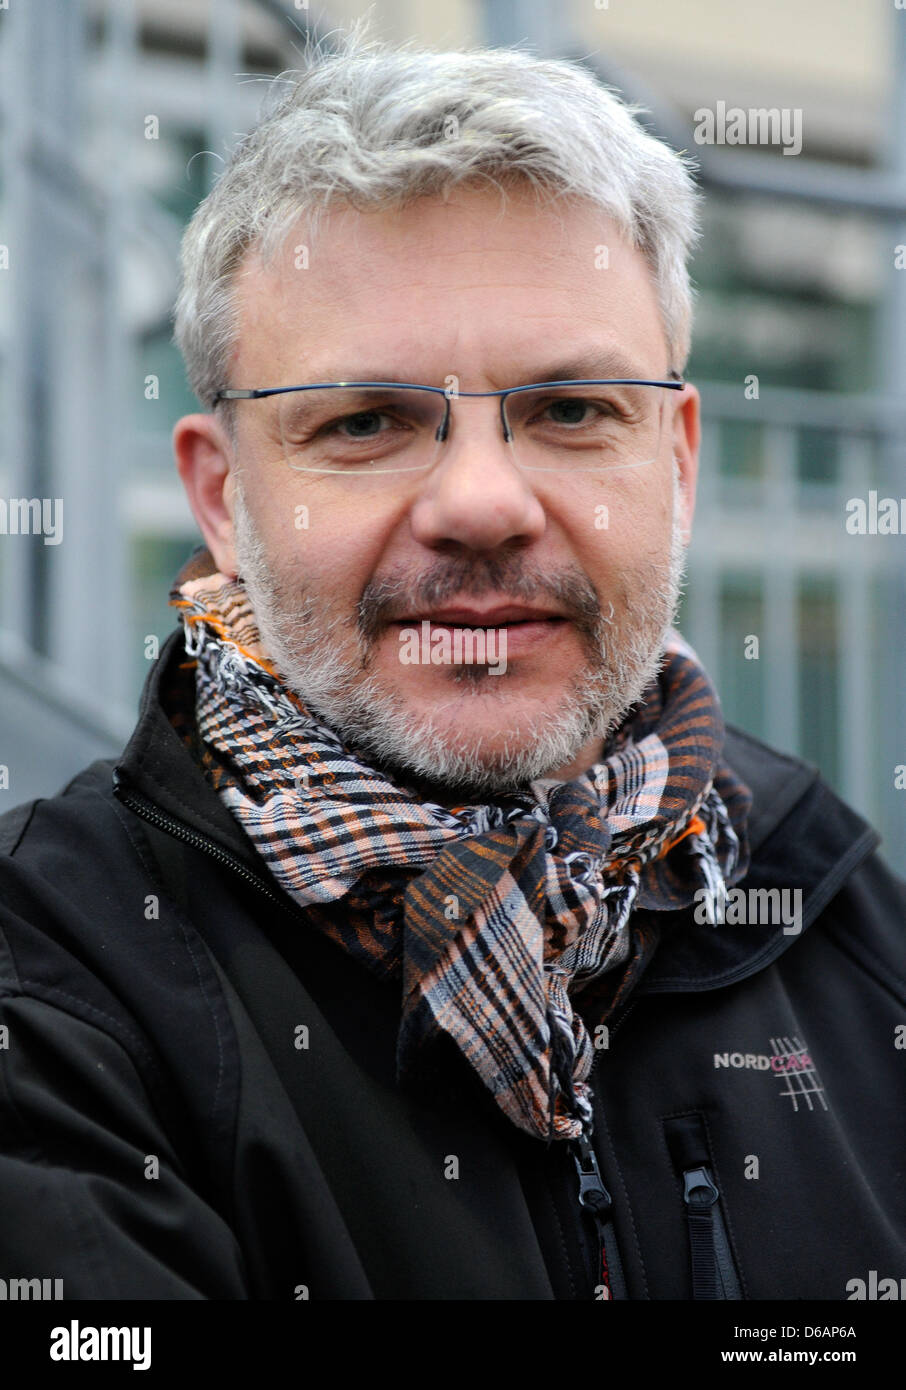 Army doctor Willi Schmidbauer is pictured in front of the Bundeswehr hospital in Hamburg, Germany, 15 April 2013. - Stock Image